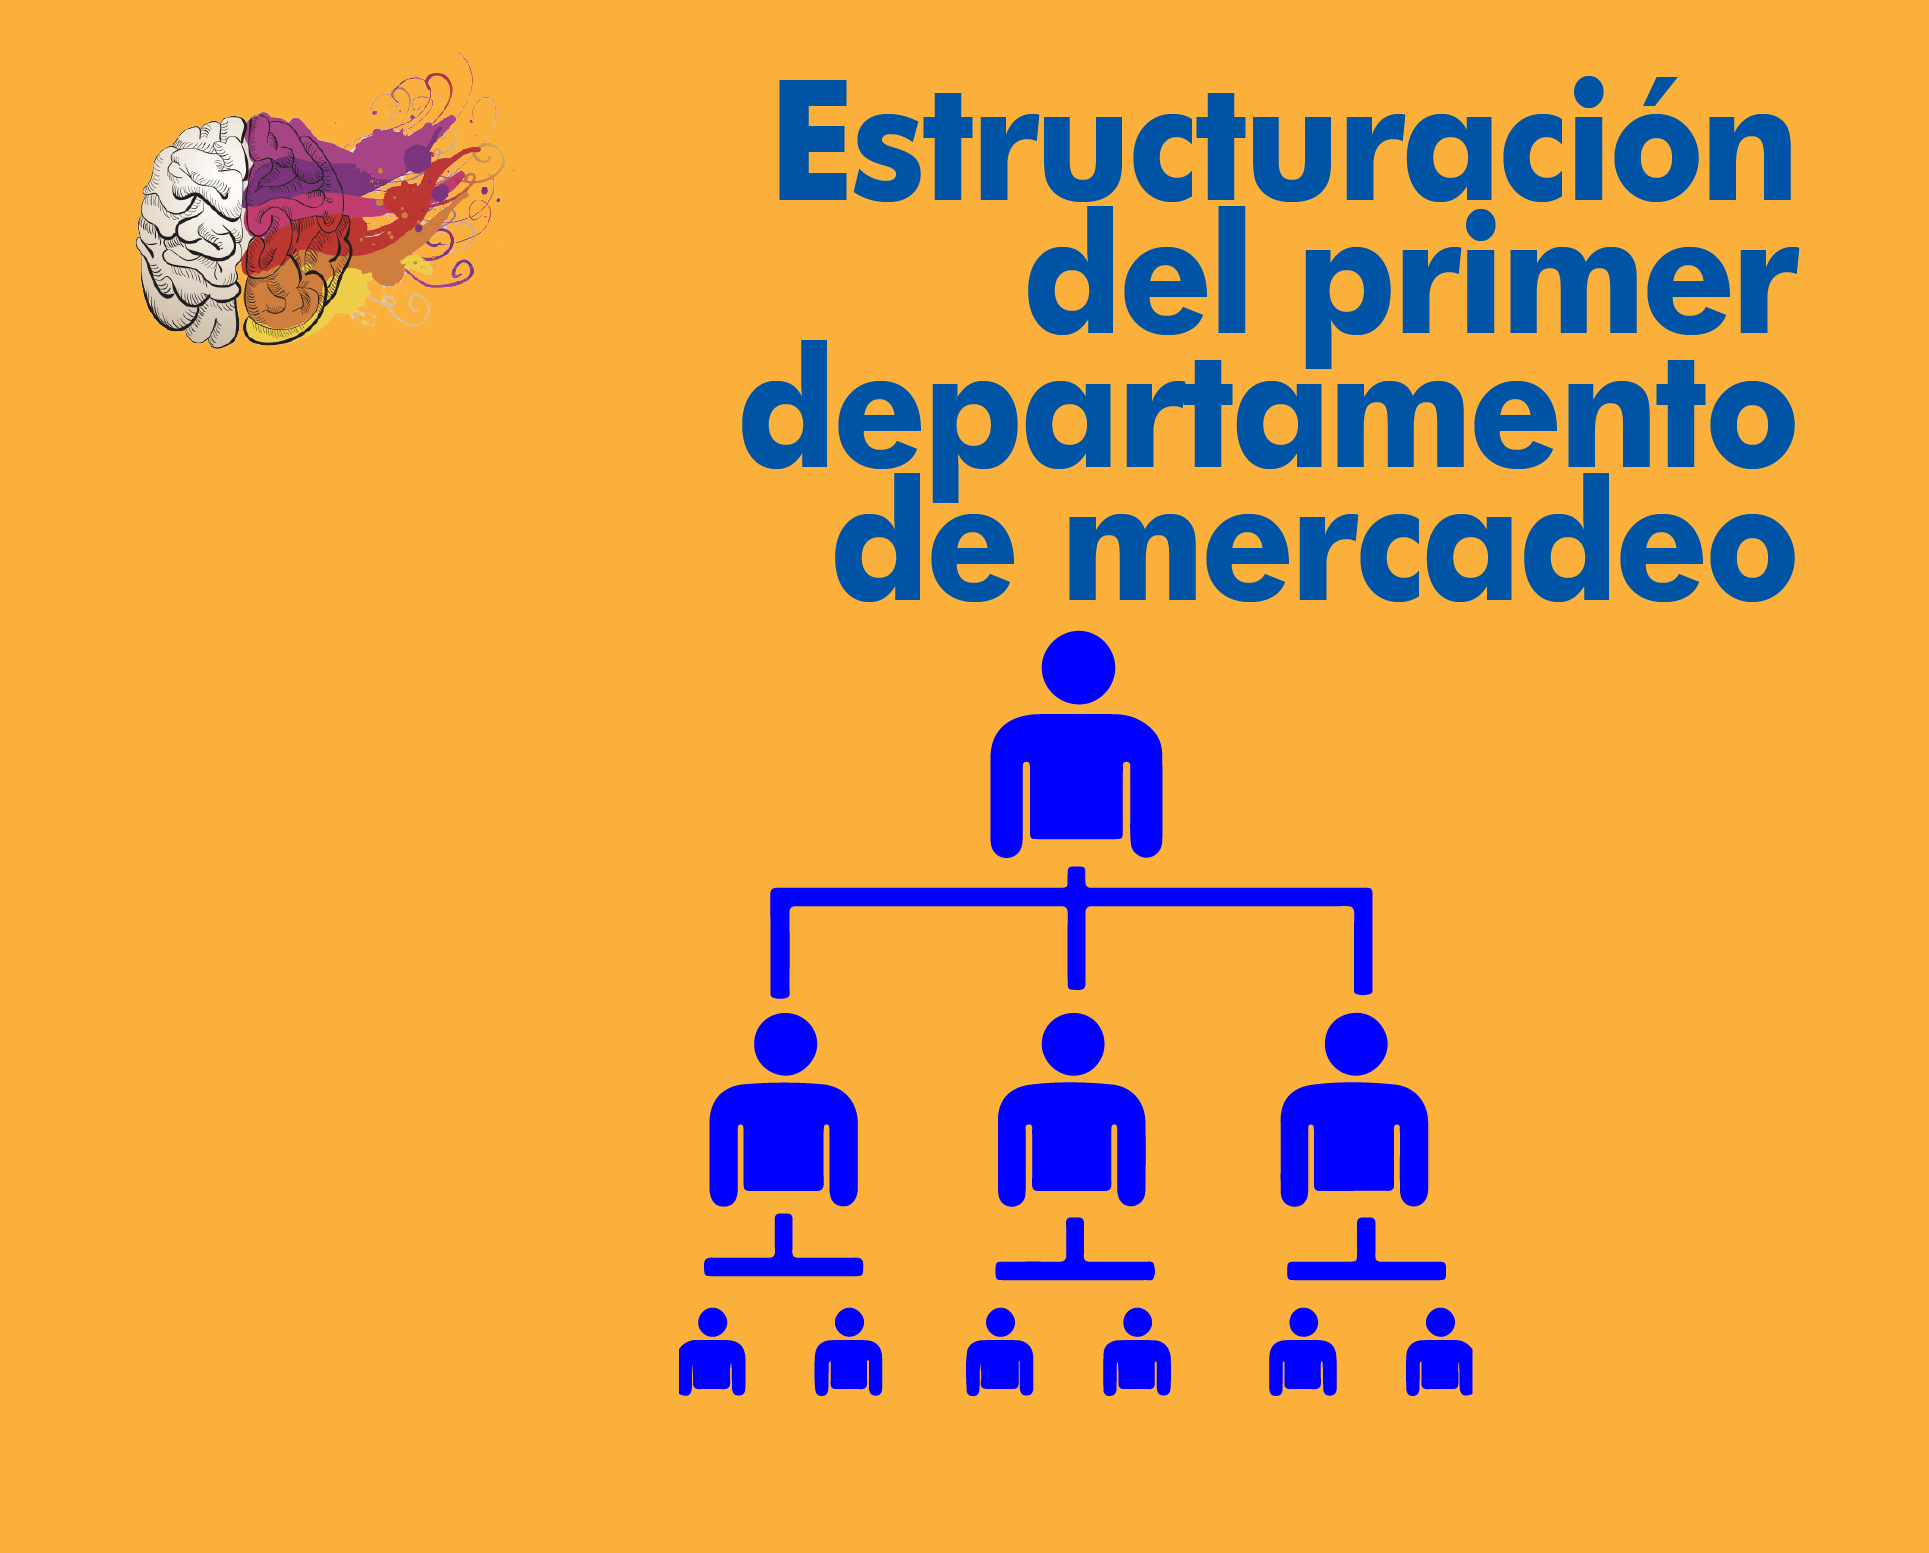 Estructuración Depto. Mercadeo